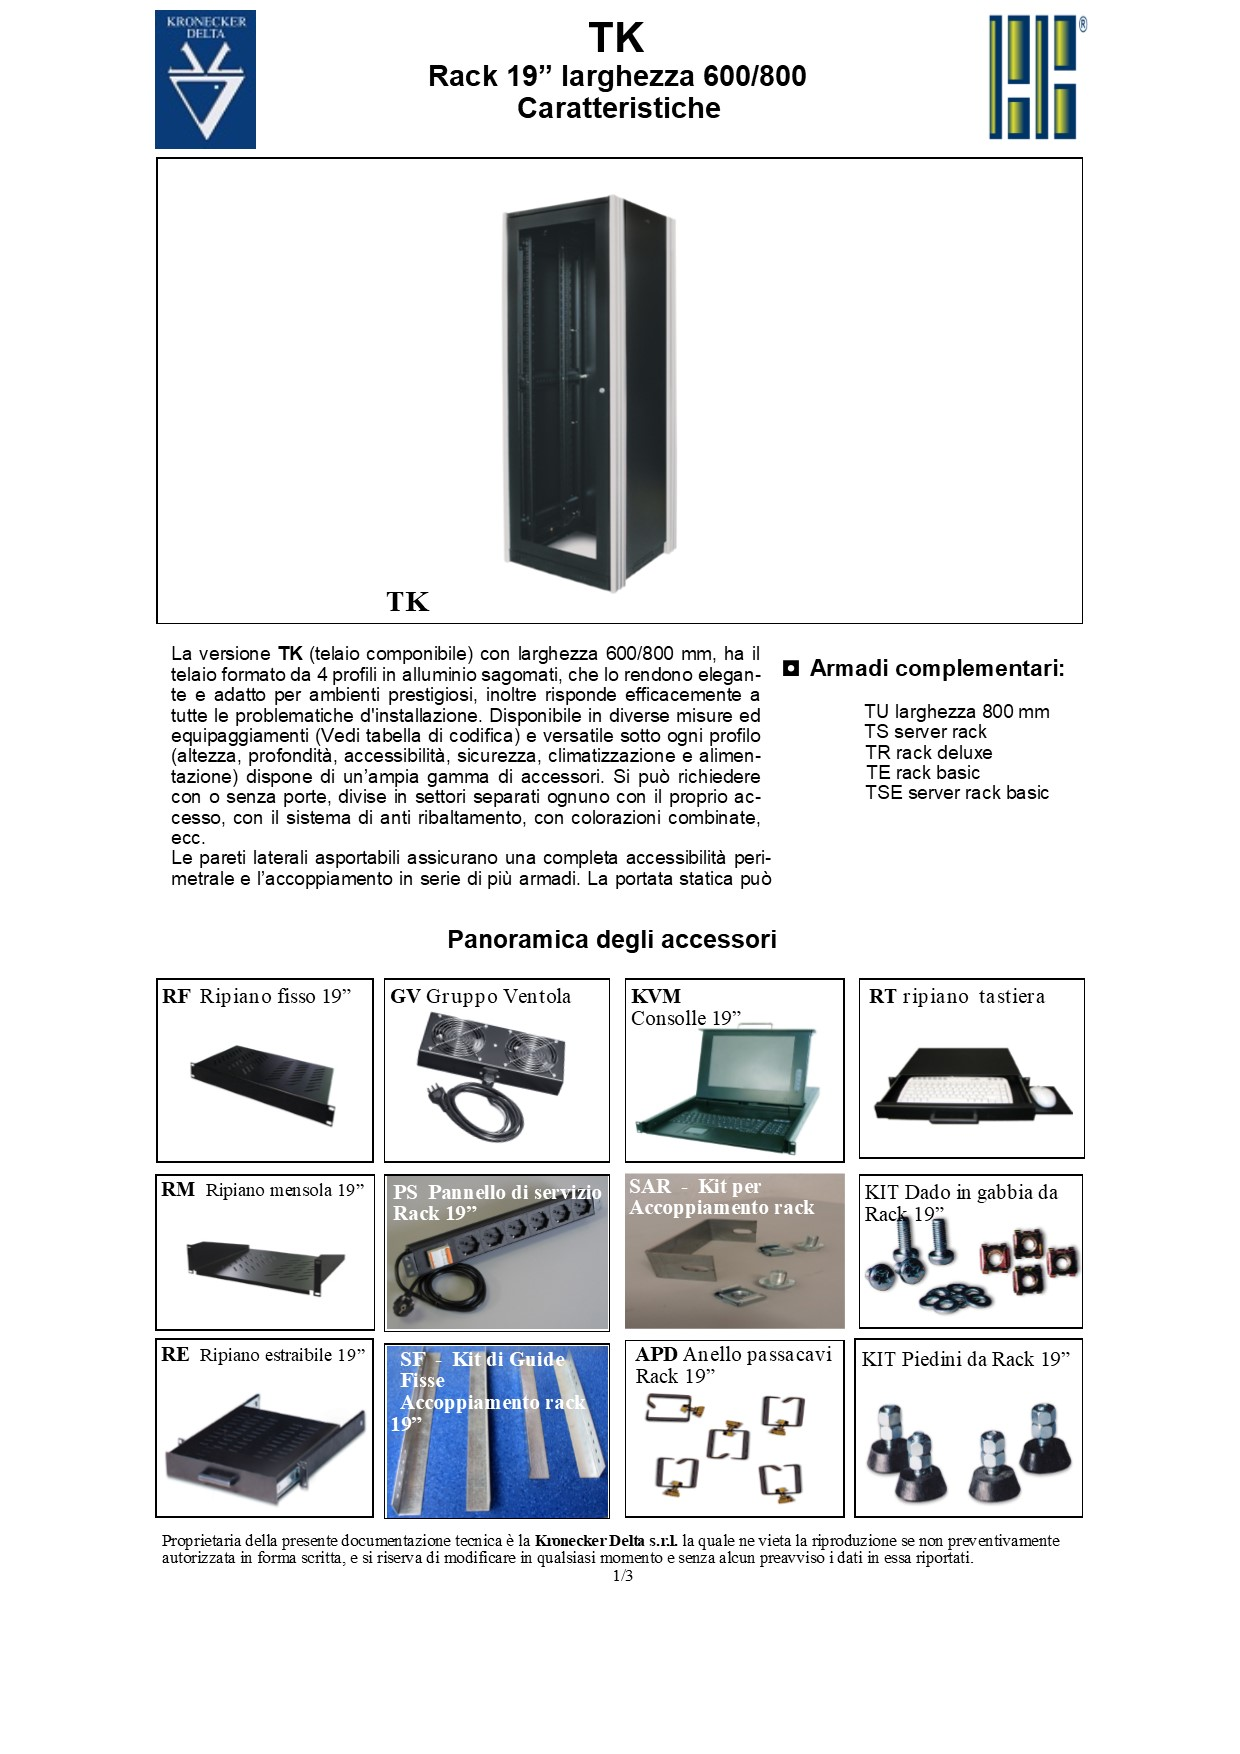 Network rack per sale di rappresentanza